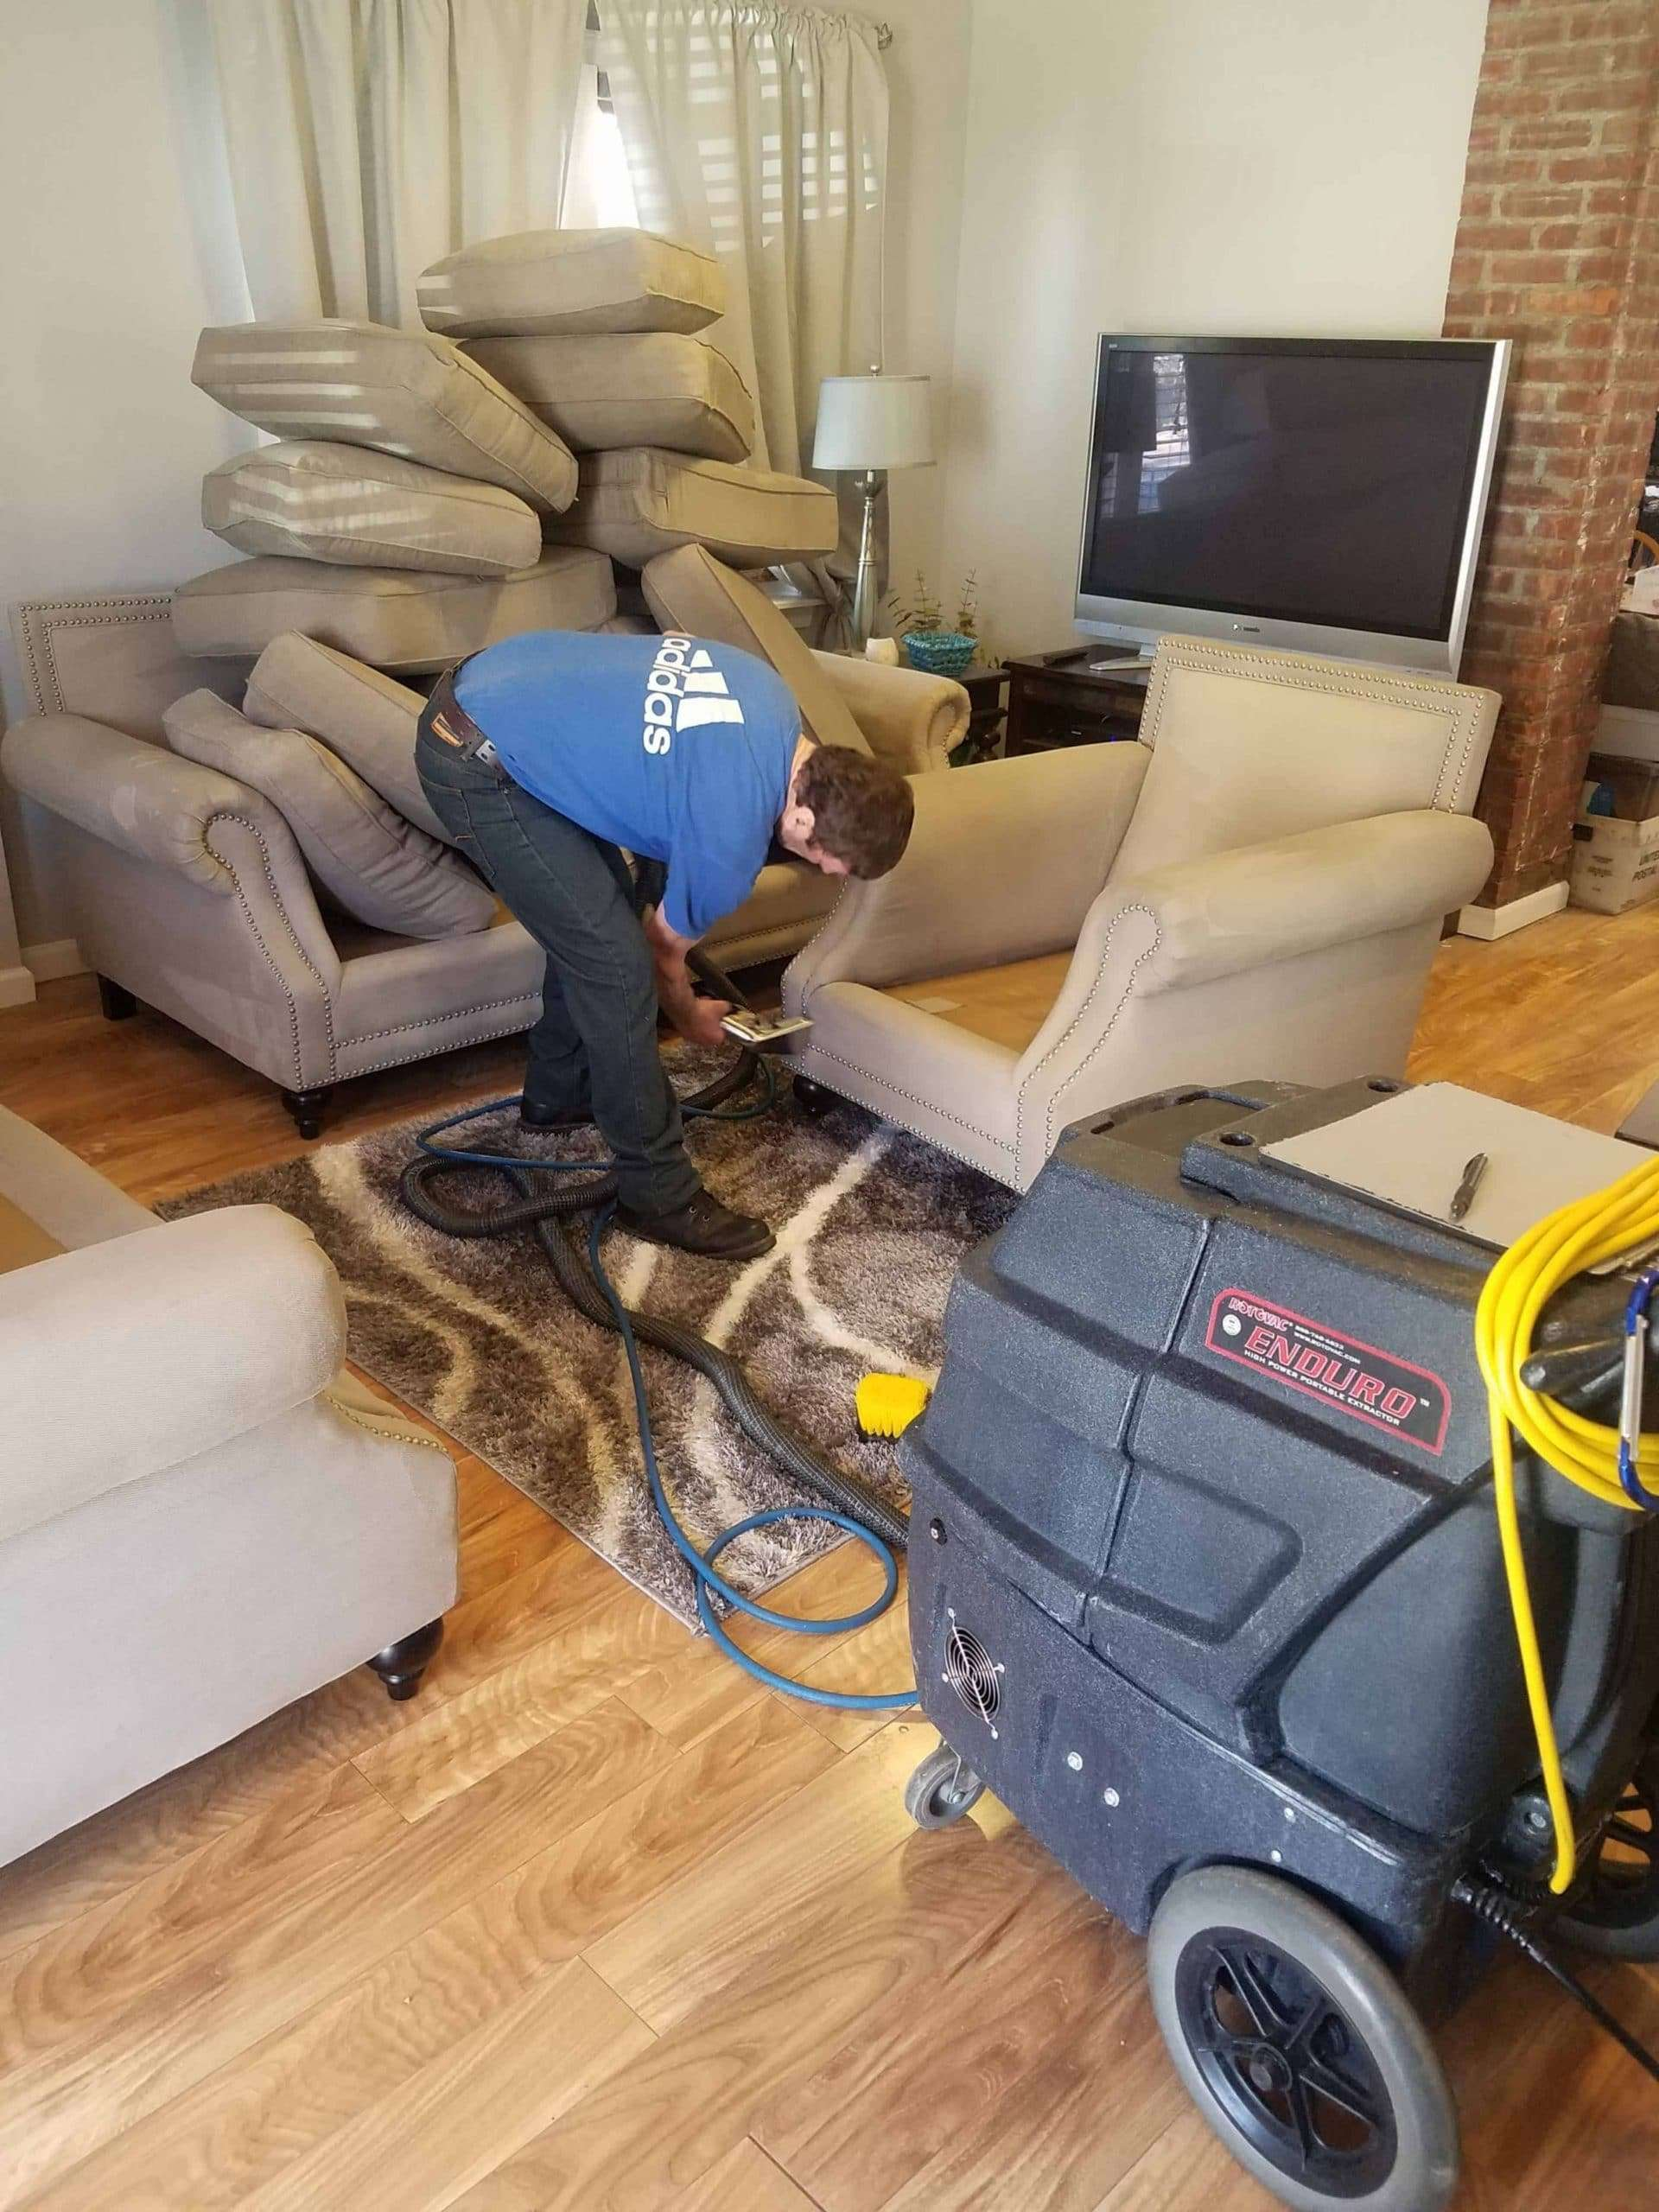 Upholstery Cleaning Nyc Affordable Prices Amazing Cleaning Results